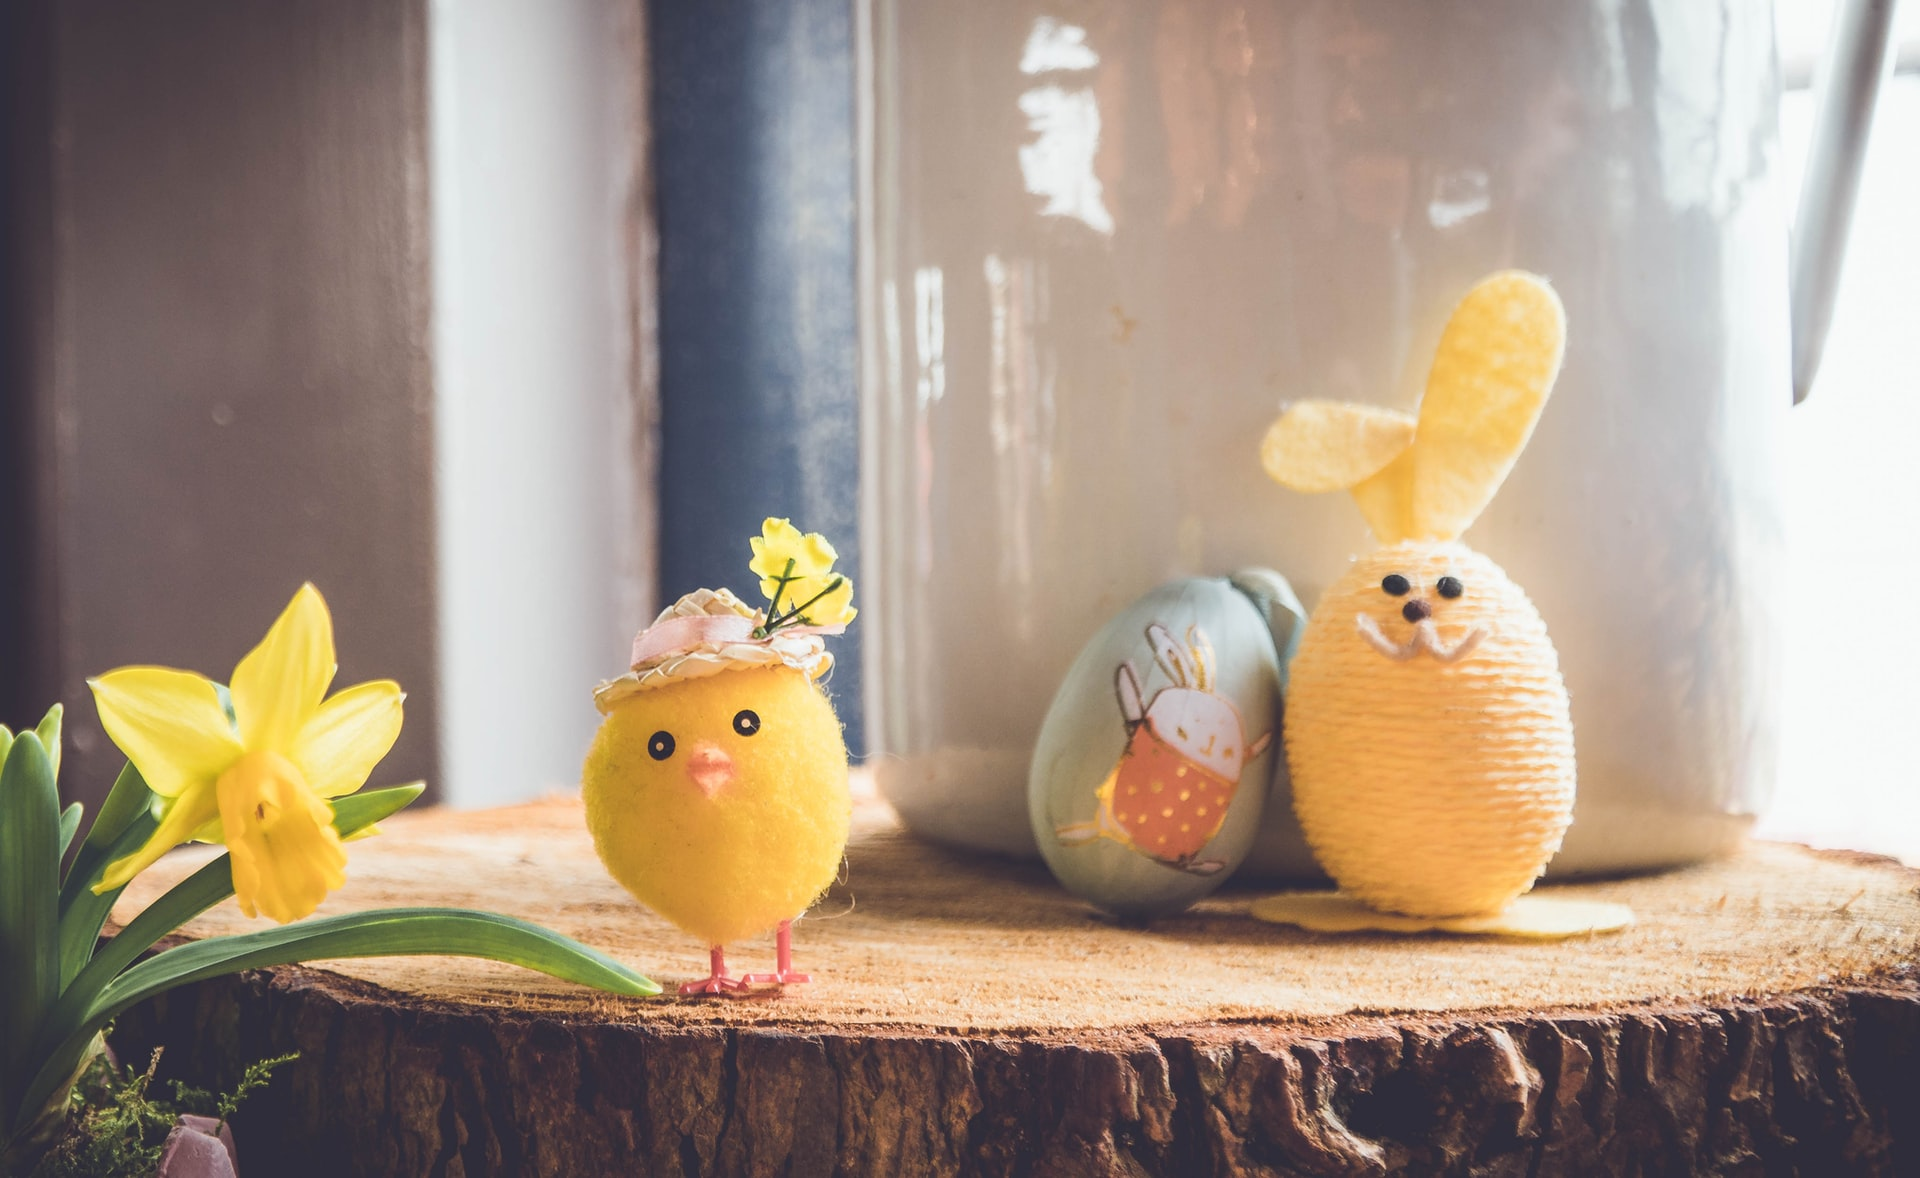 Felted Easter chick on a table